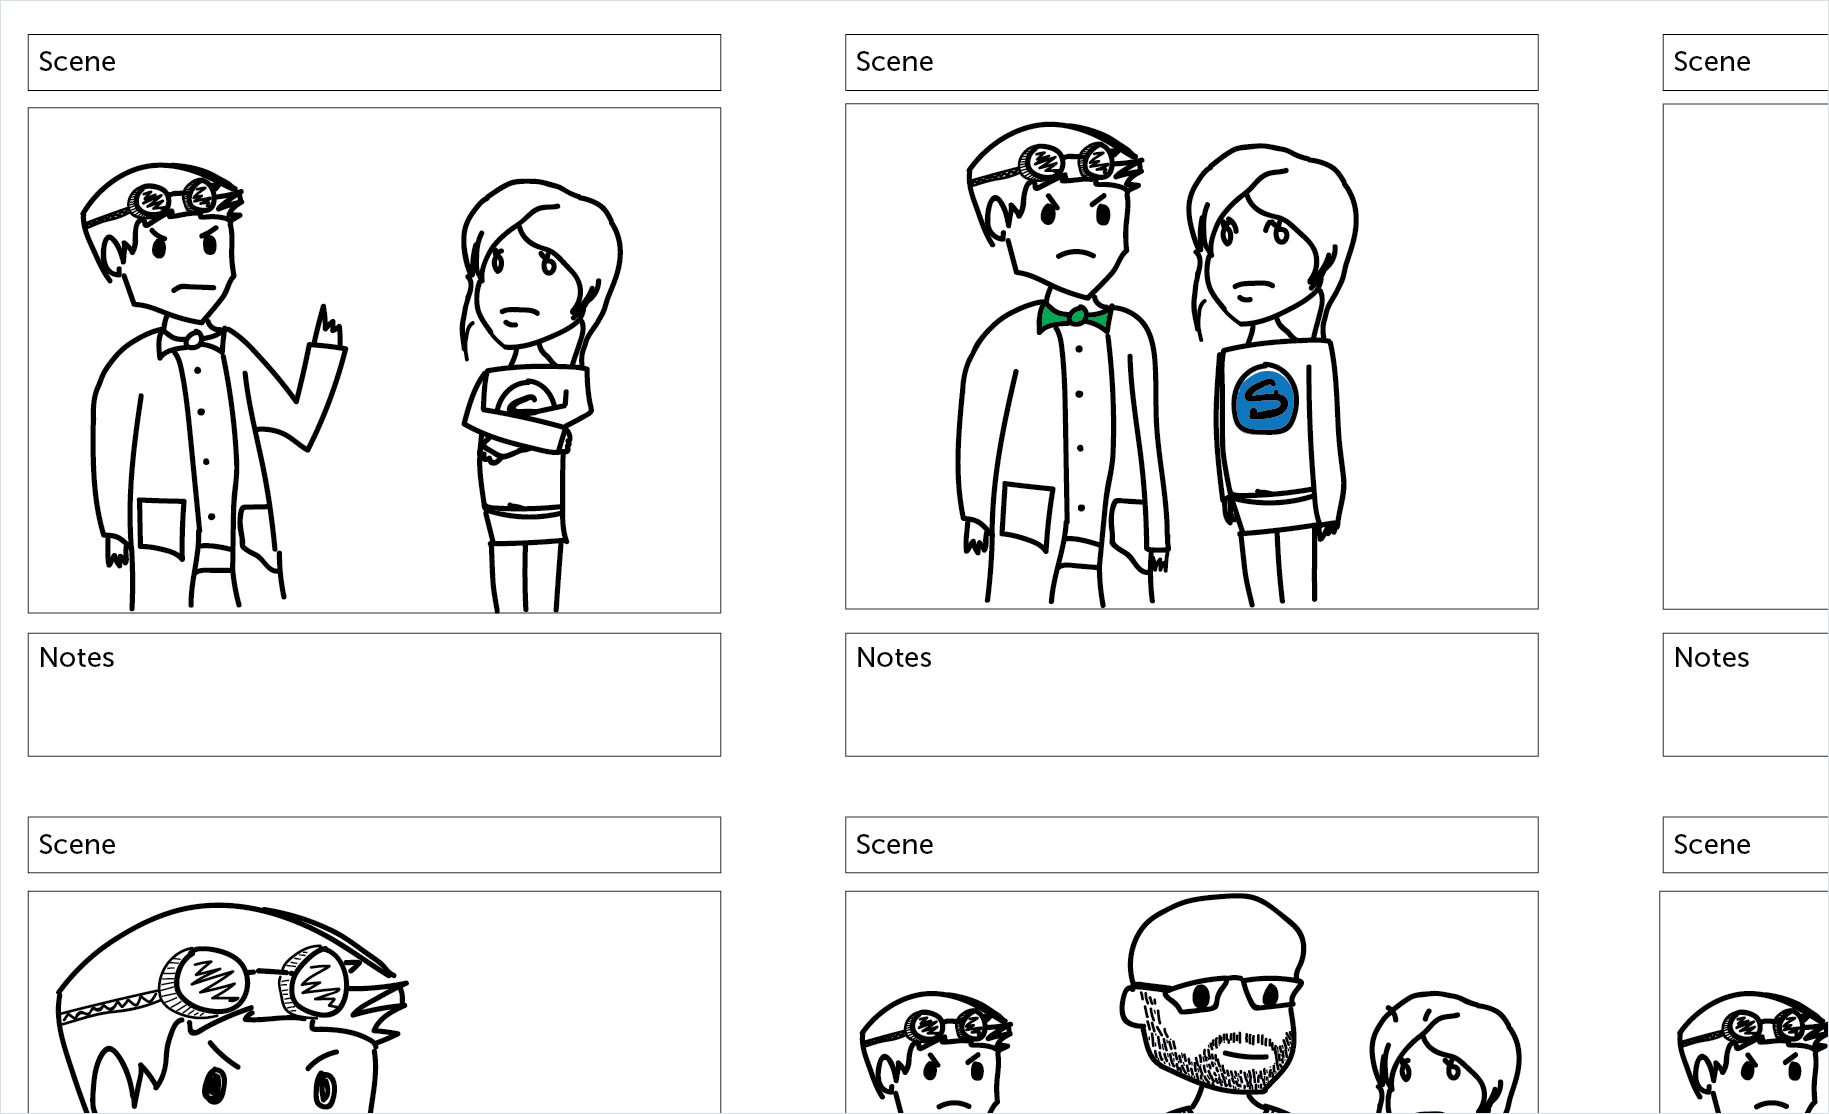 storyboard with hand drawn characters in each scene